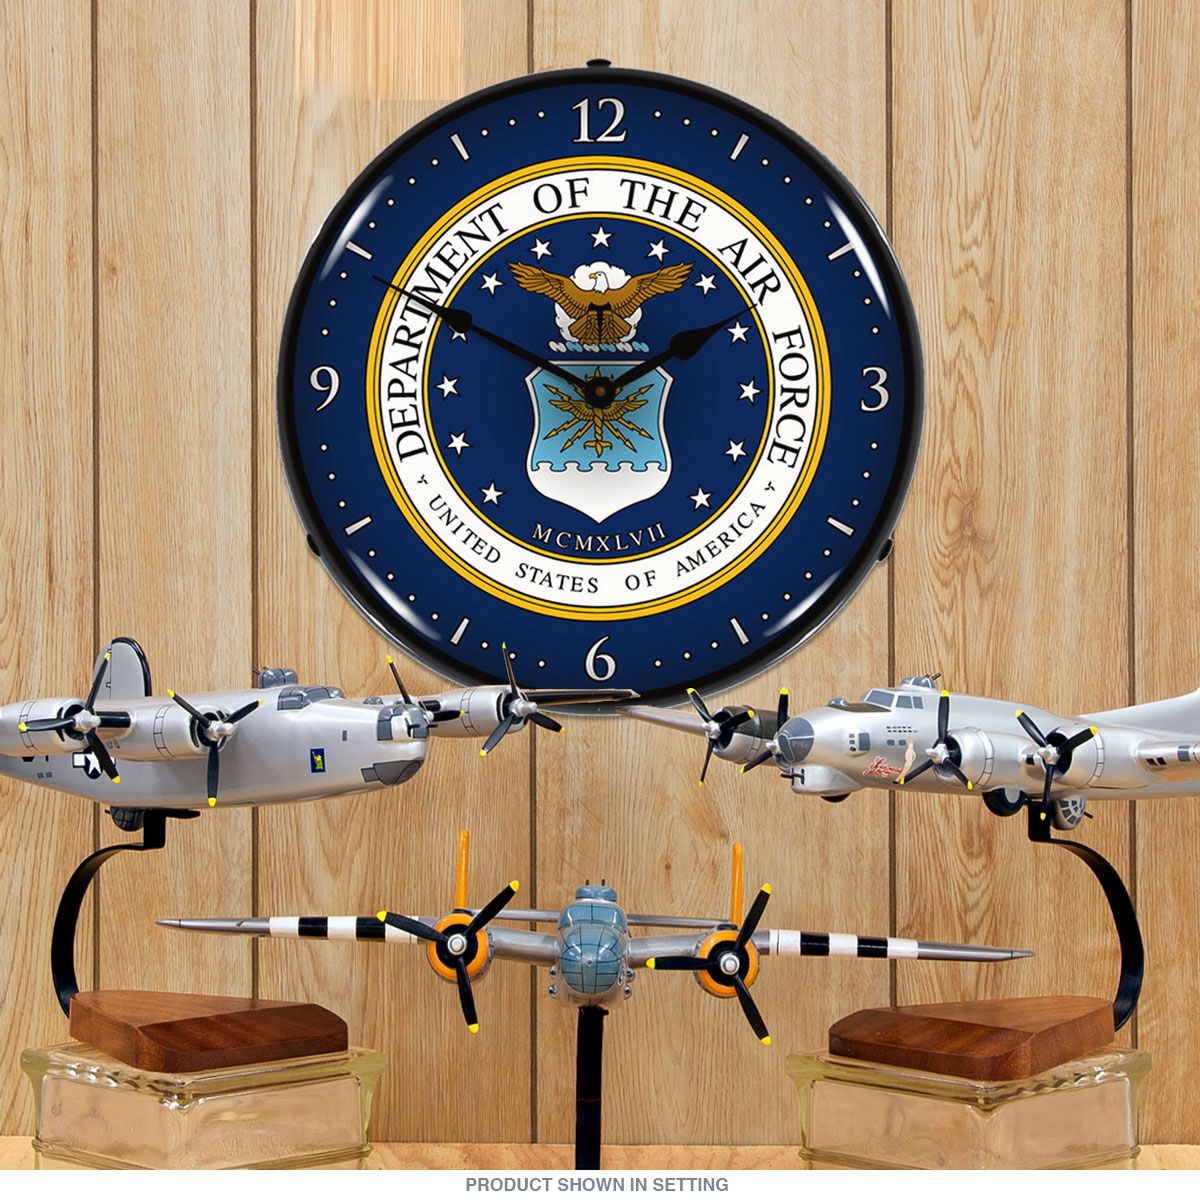 United States Air Force Light Up Military Clock